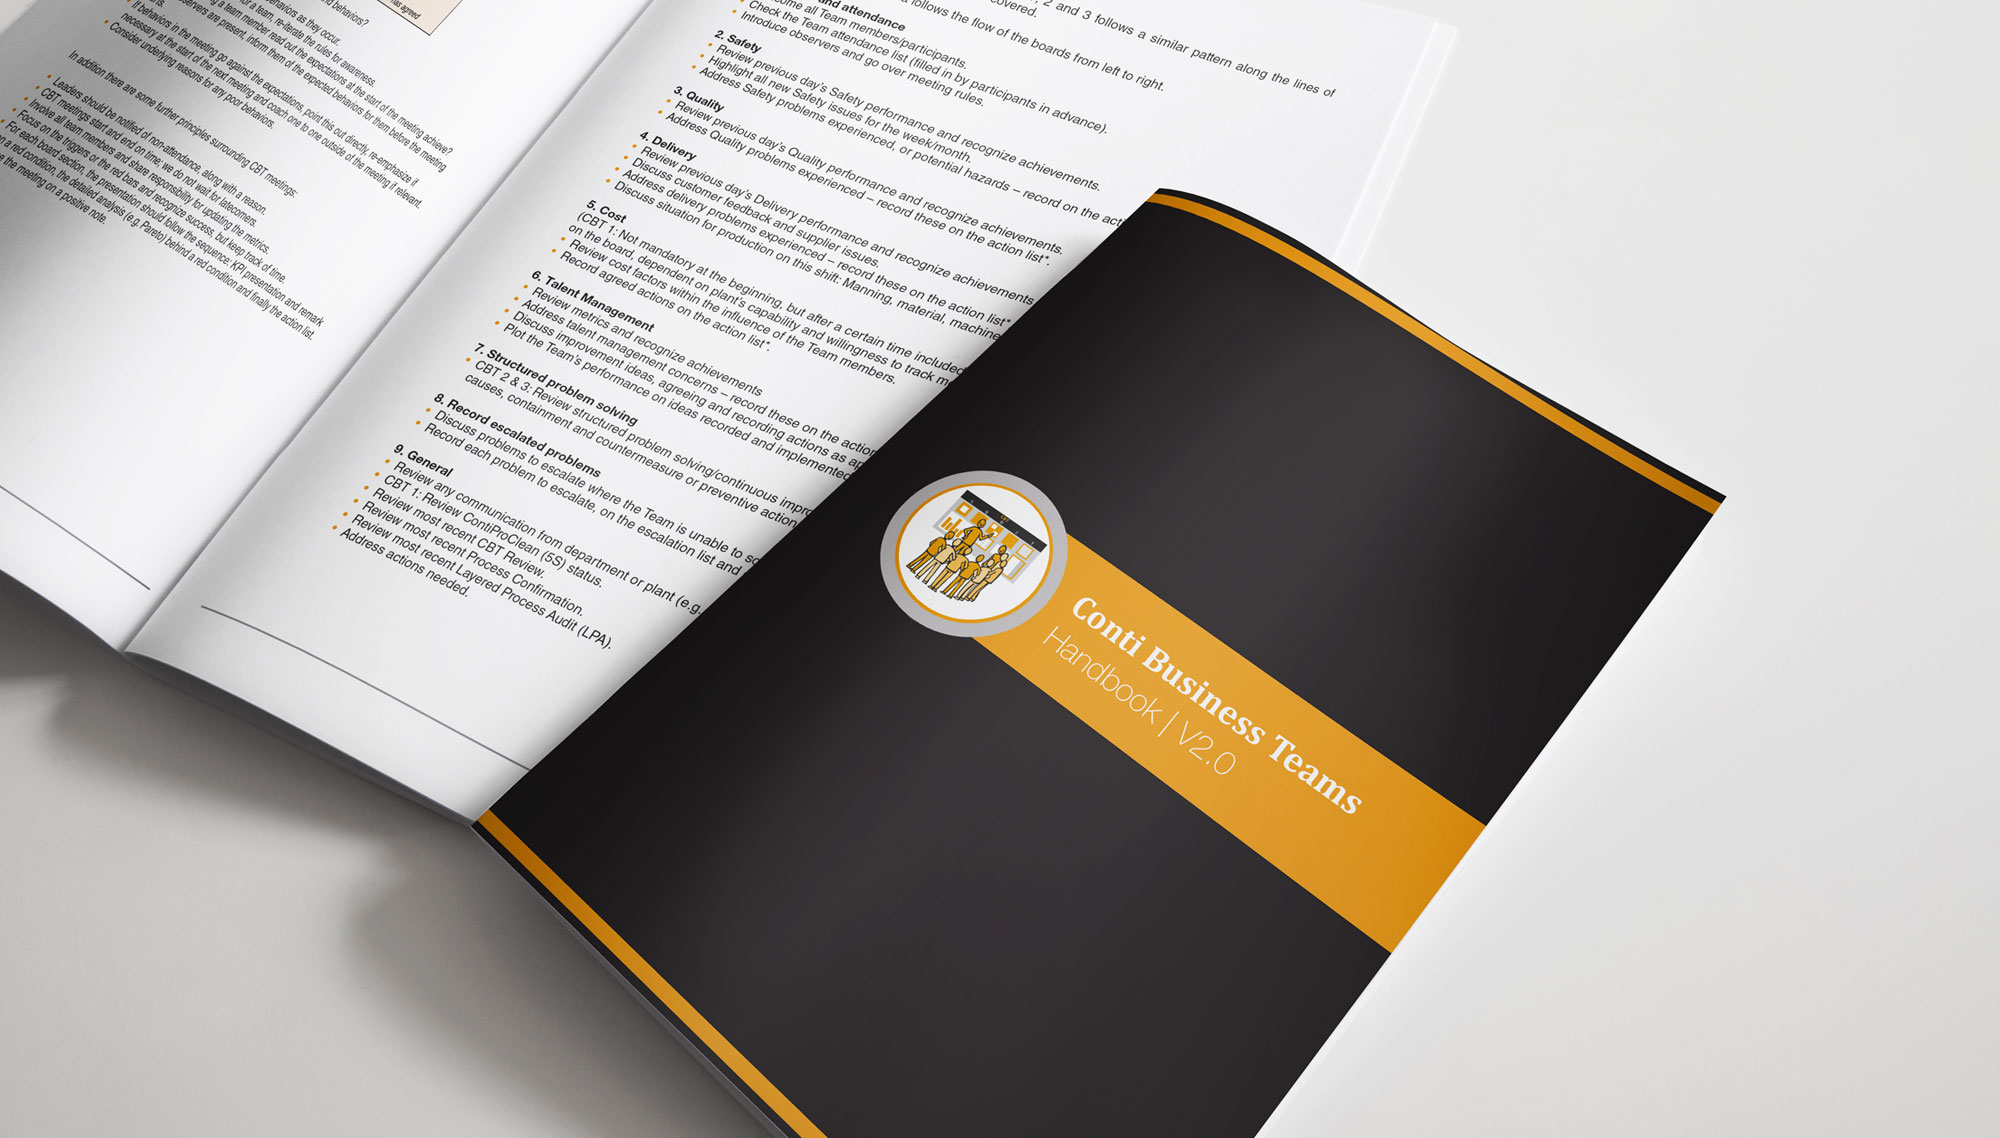 Continental Tyres Training Manuals